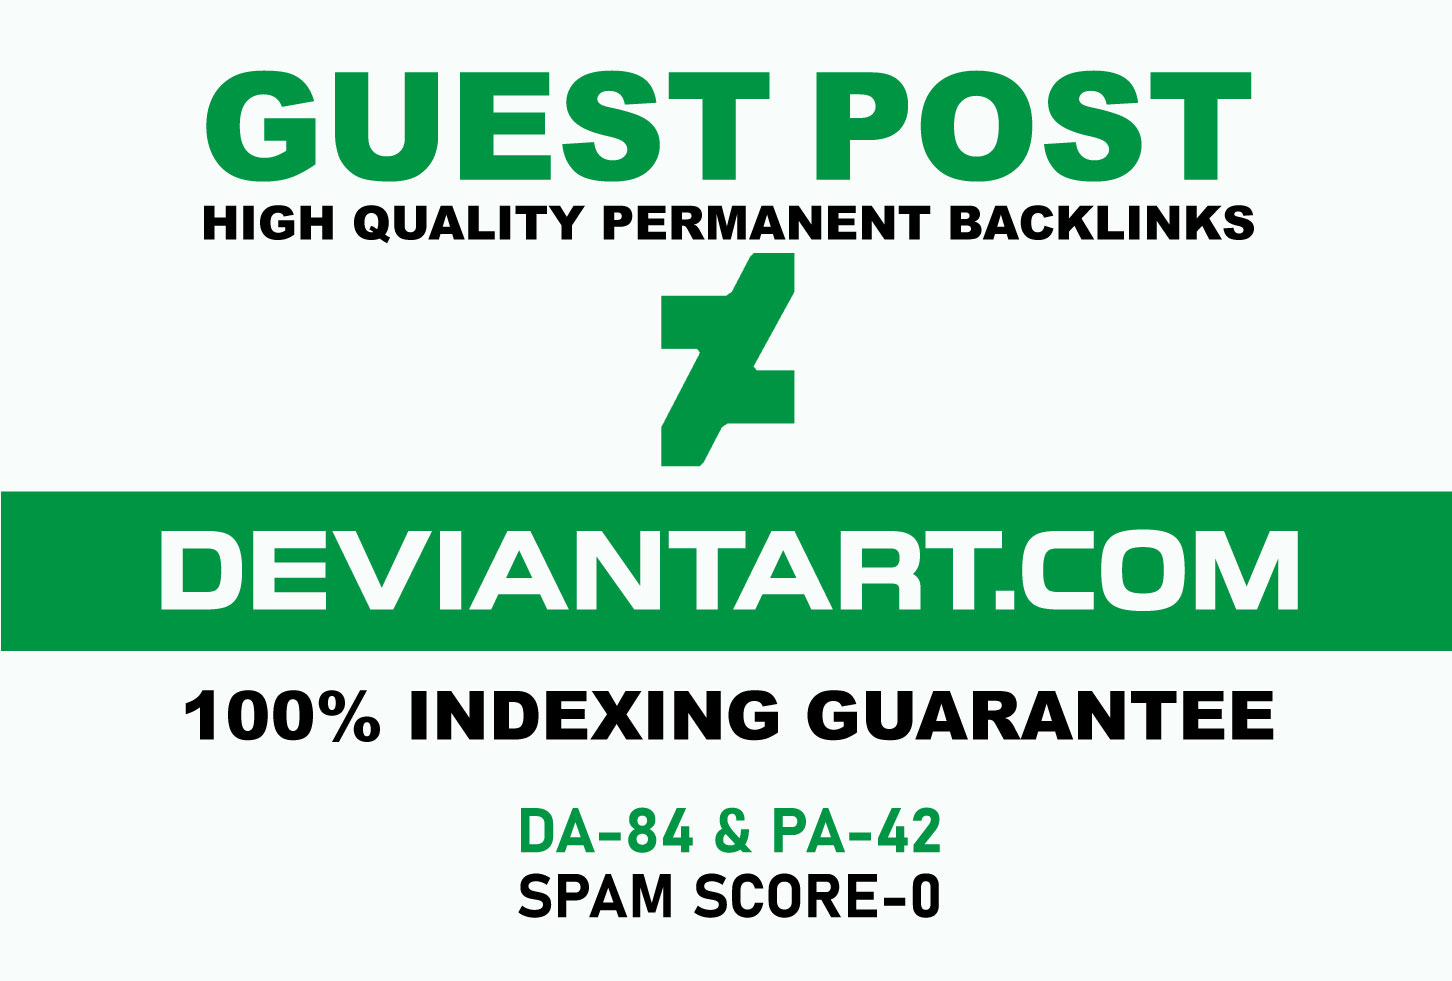 Publish A Guest Blog Post On deviantart. com DA-84 With 100 Indexing guarantee